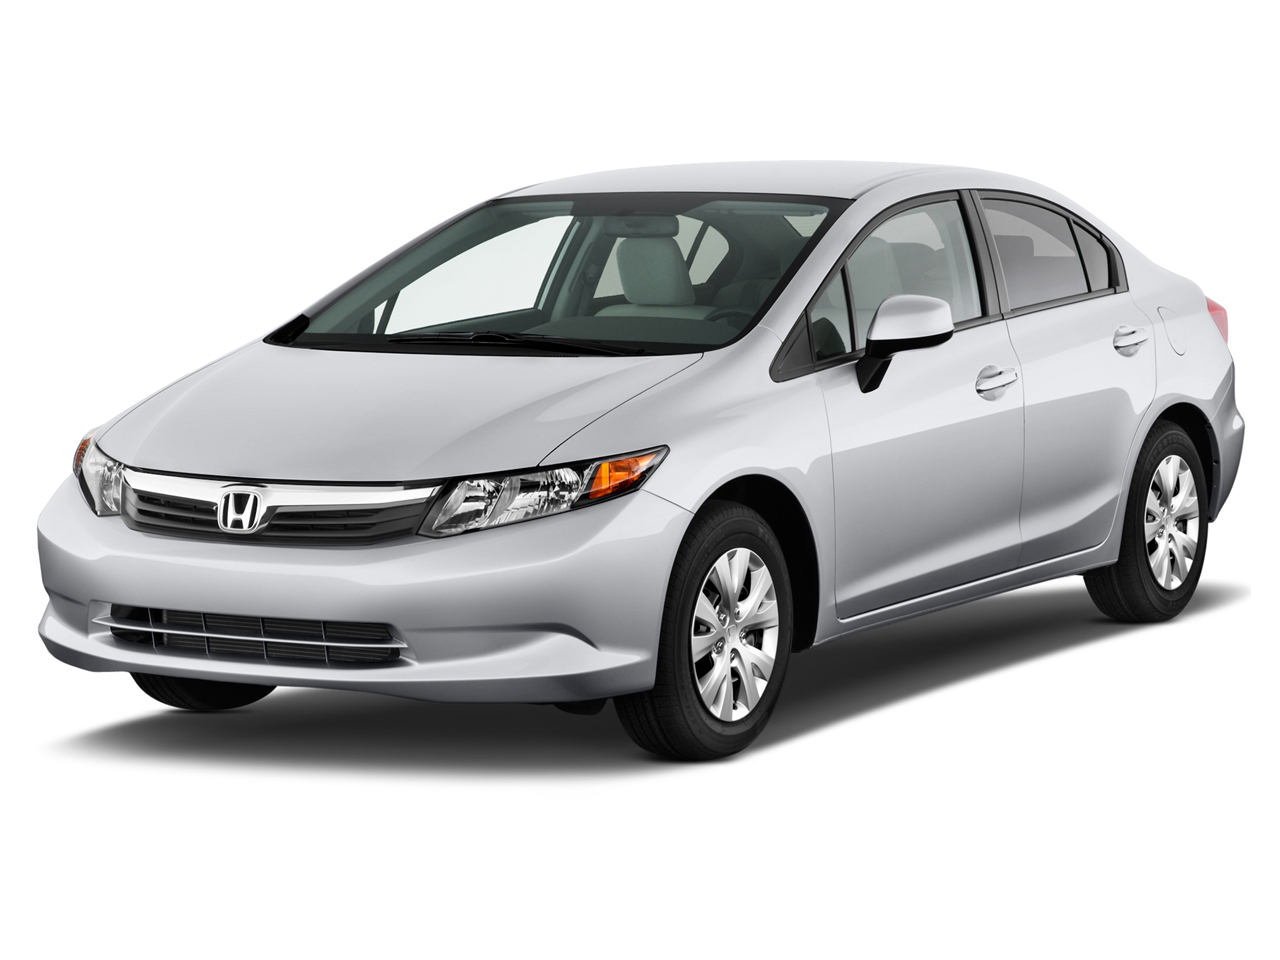 2012 honda civic reviews test drives green car reports. Black Bedroom Furniture Sets. Home Design Ideas